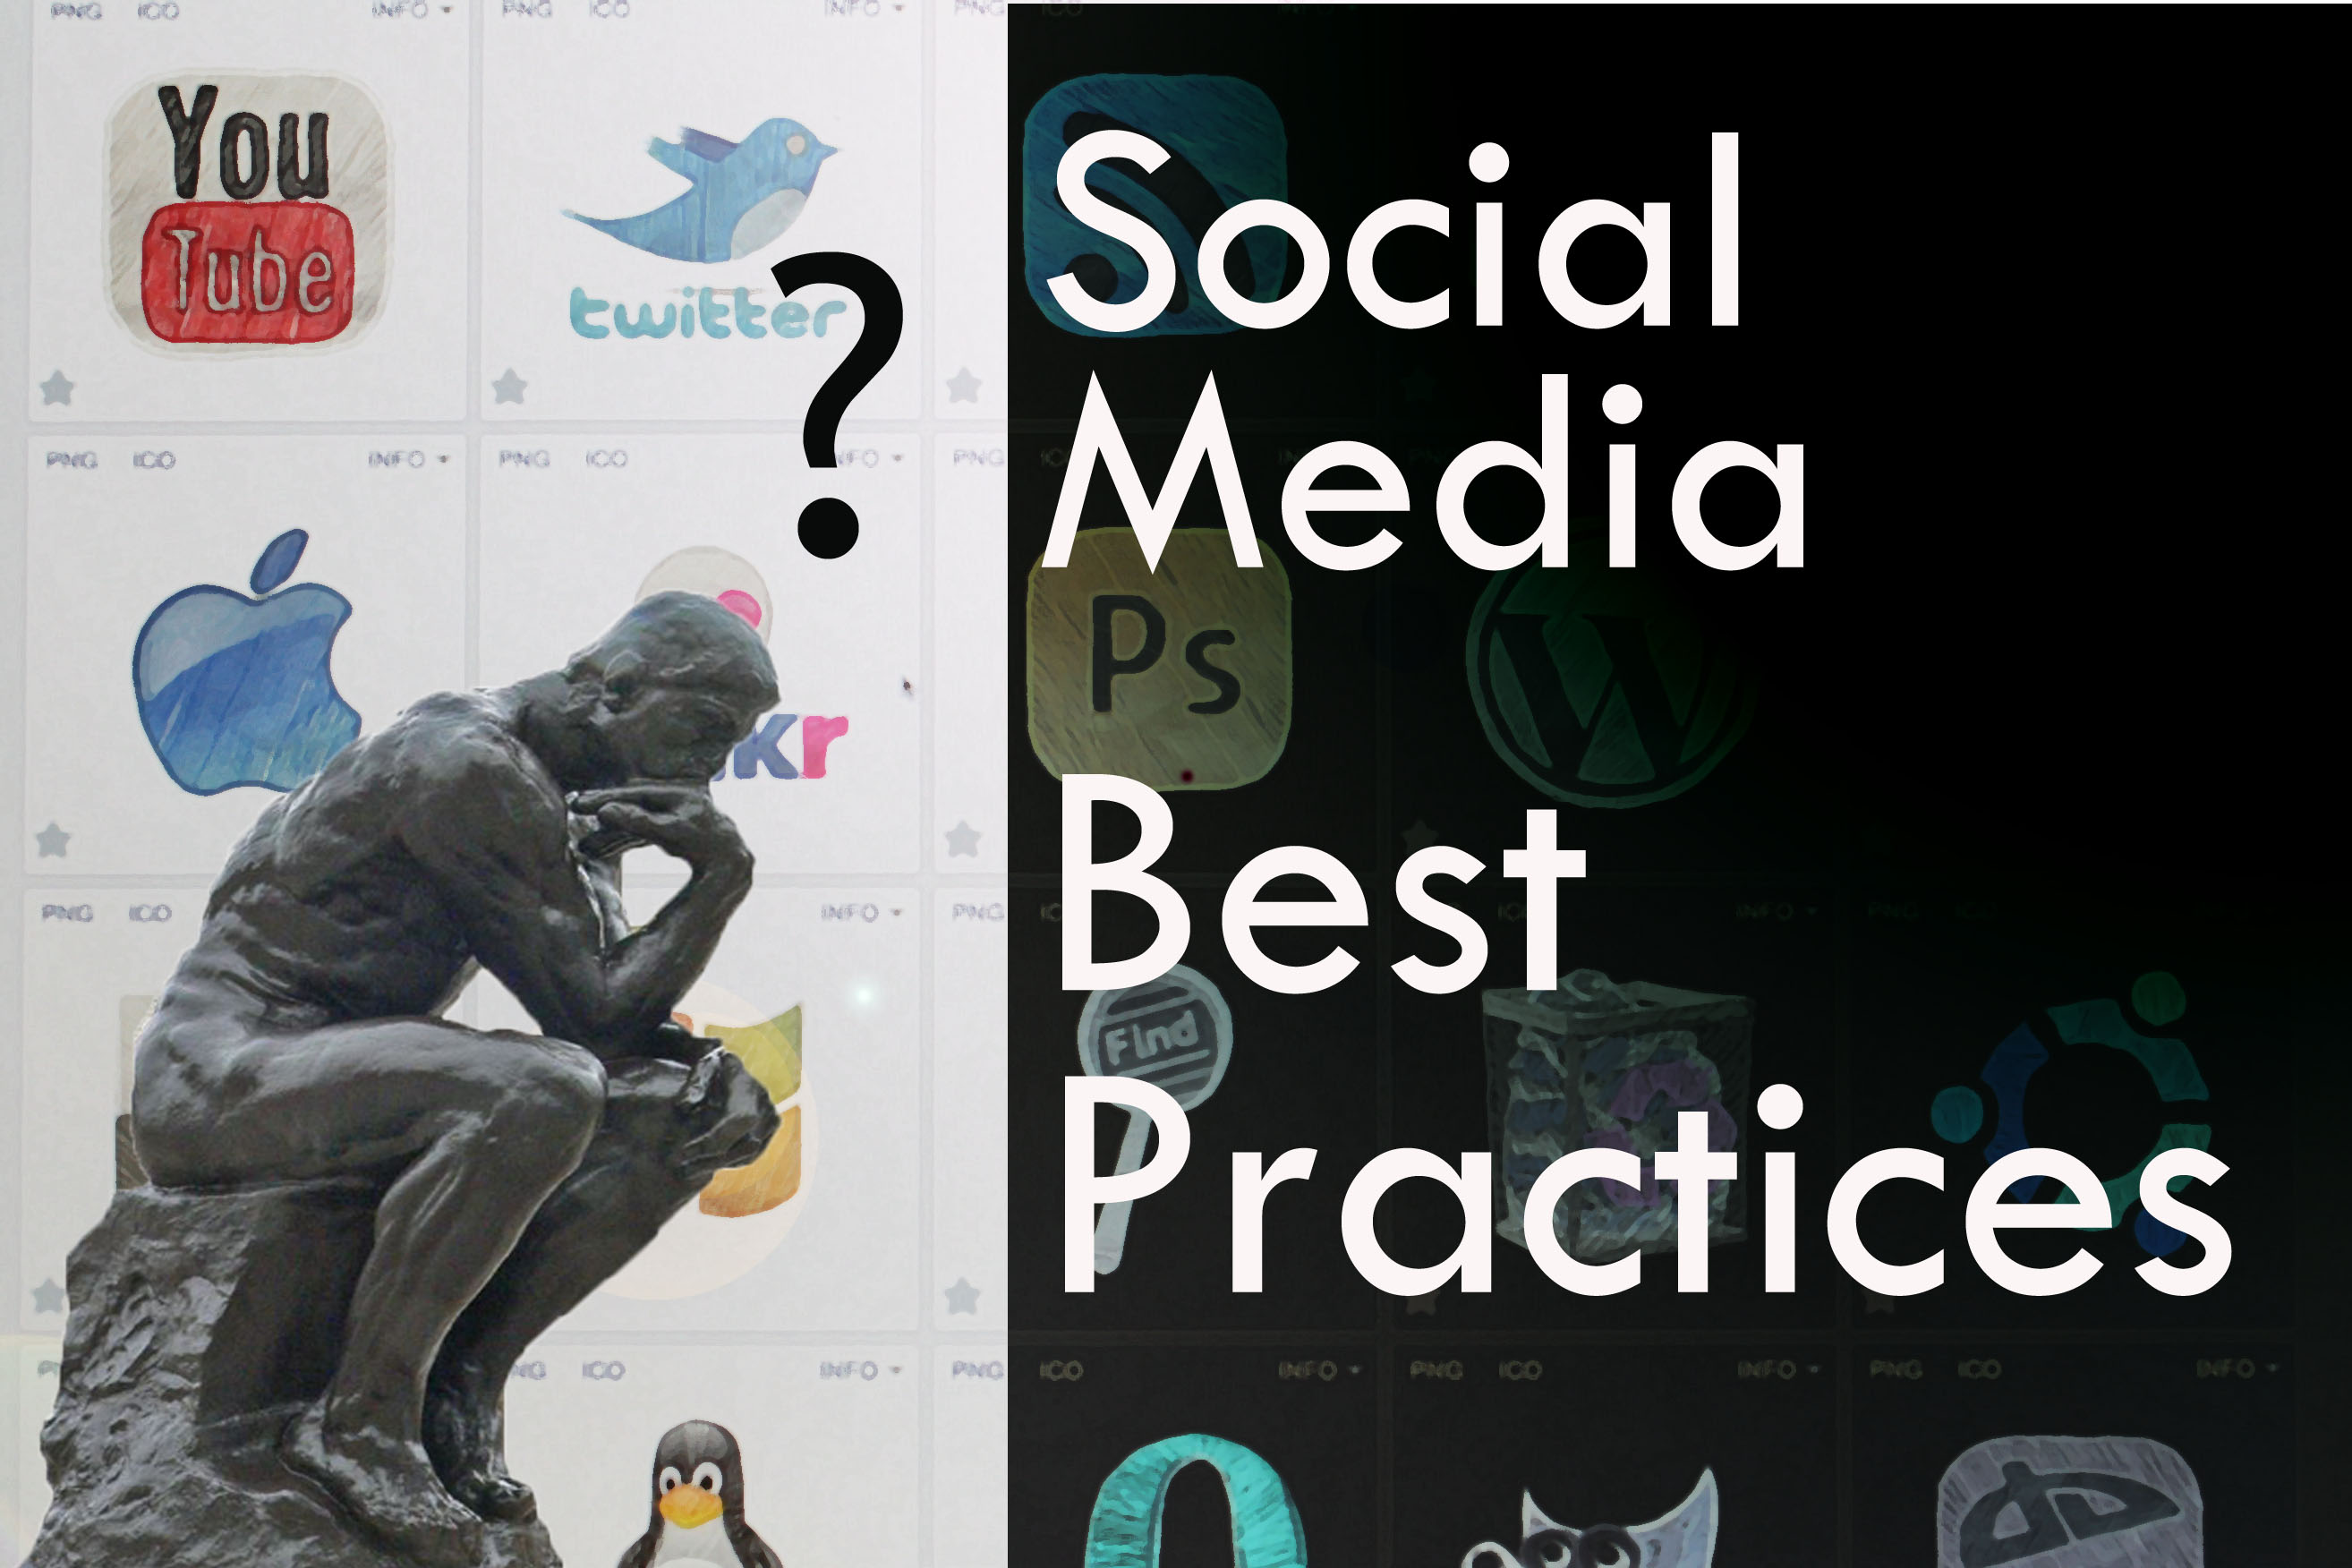 Join us for Social Media Best Practices